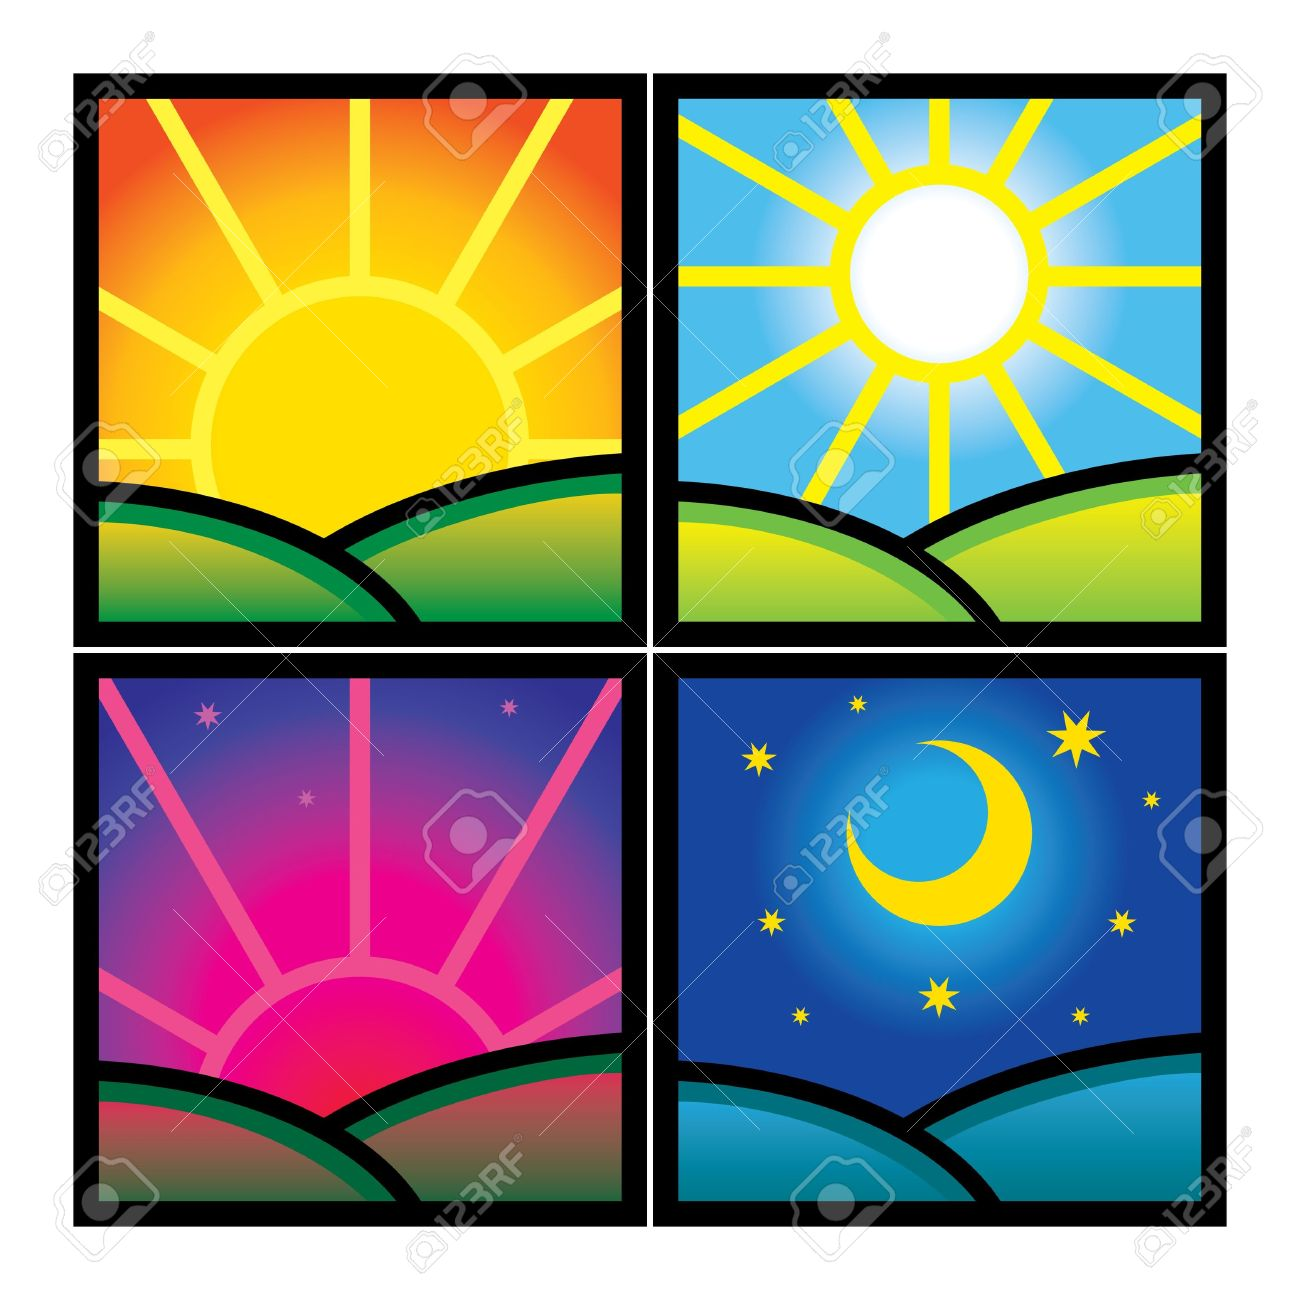 Night Sky clipart afternoon #13